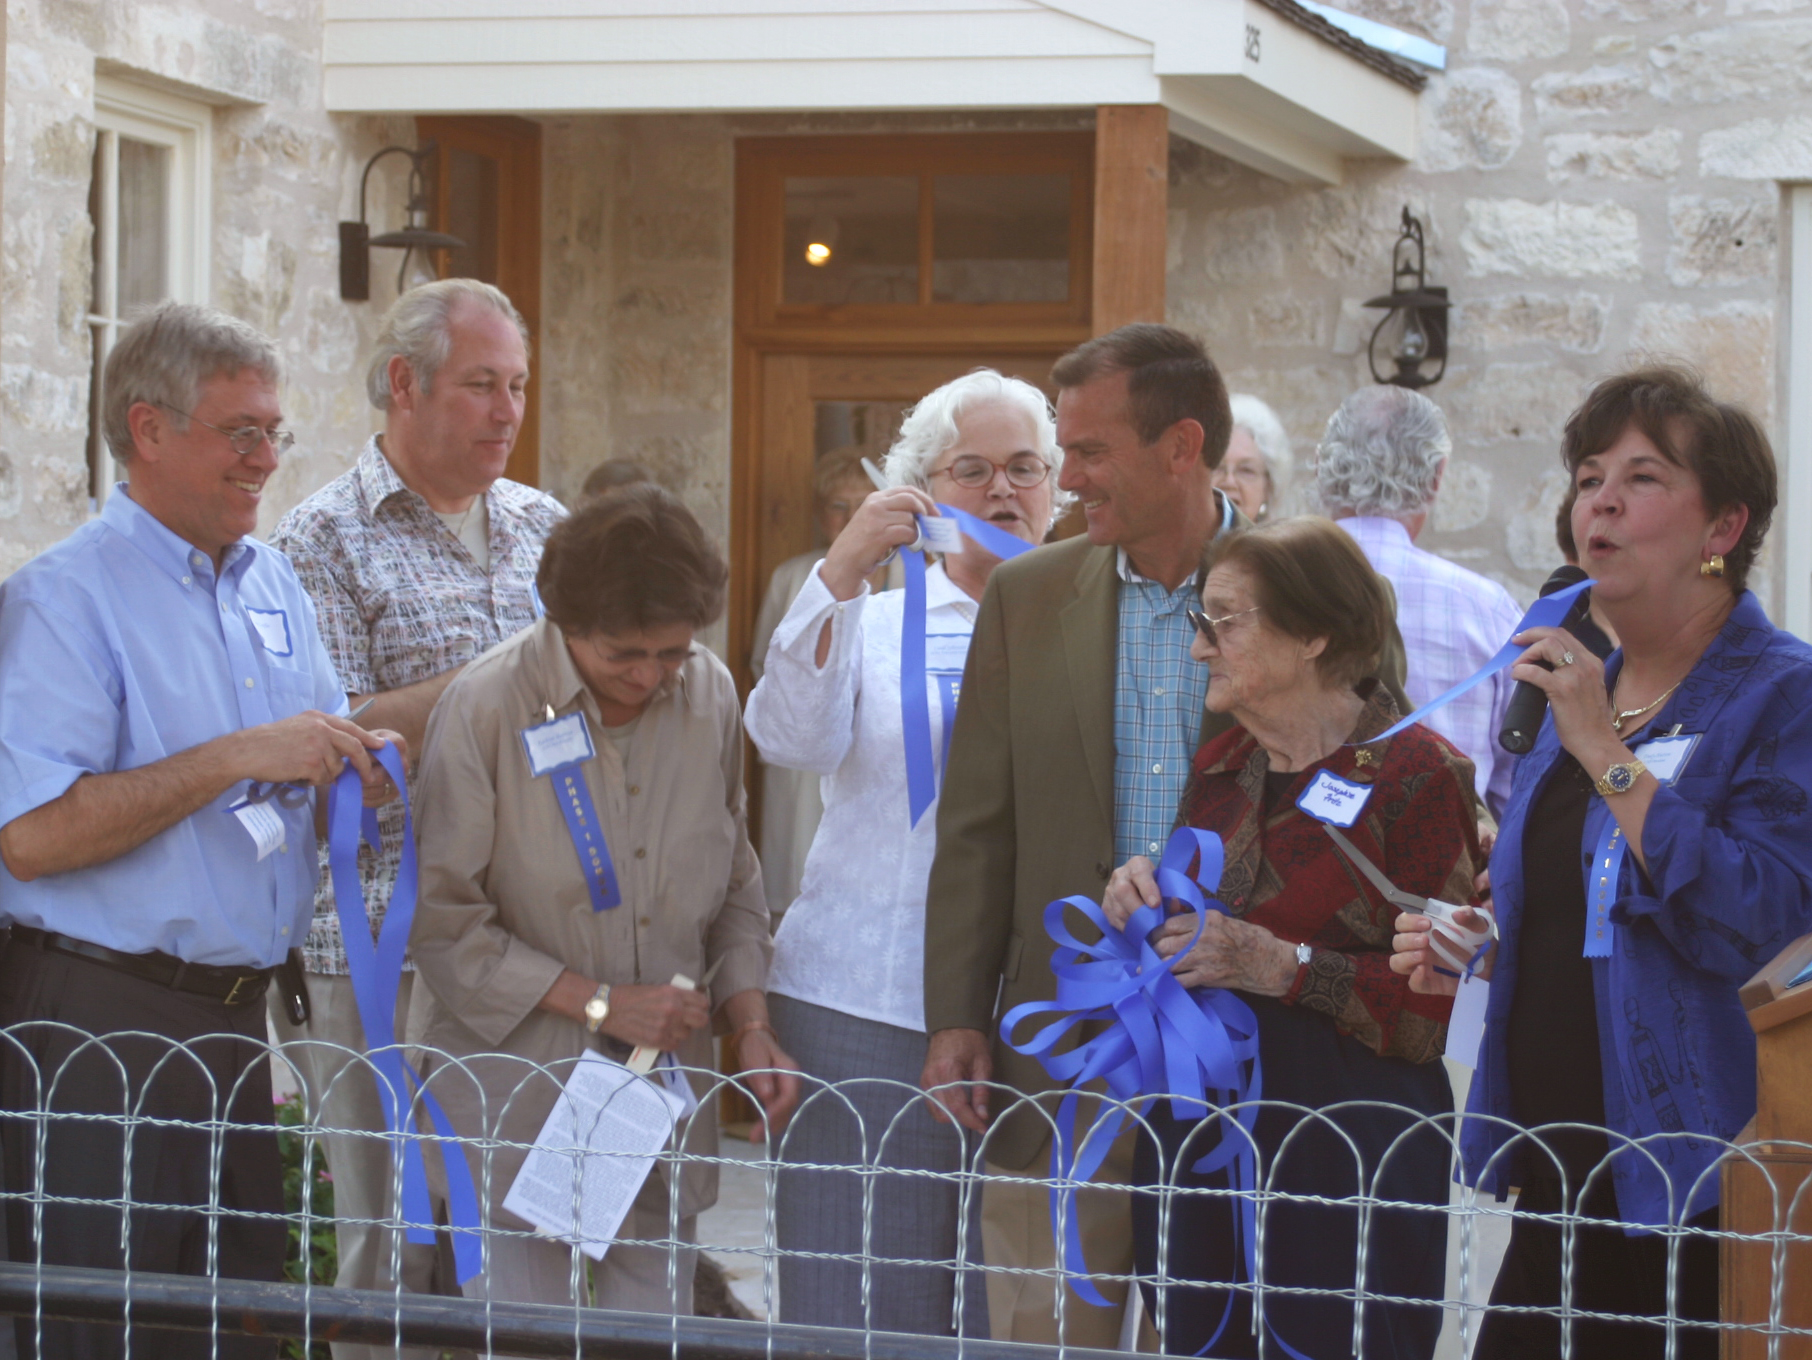 fredericksburg, TX:  the community celebrates the opening of the historic dambach-bessier house at the pioneer museum, a critical master plan objective.